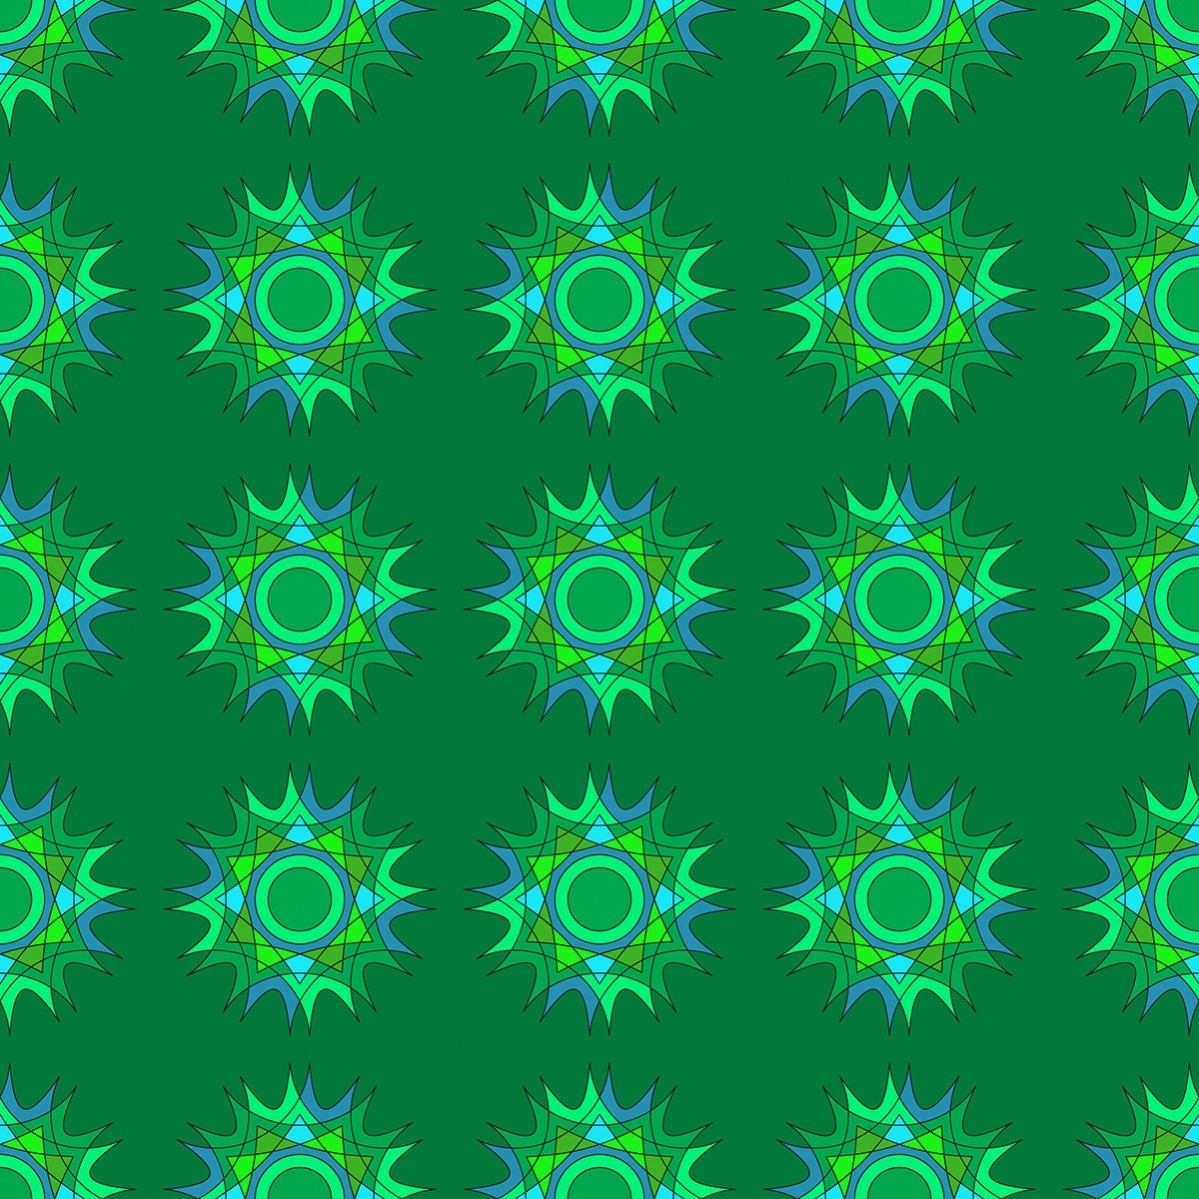 green pattern with stars